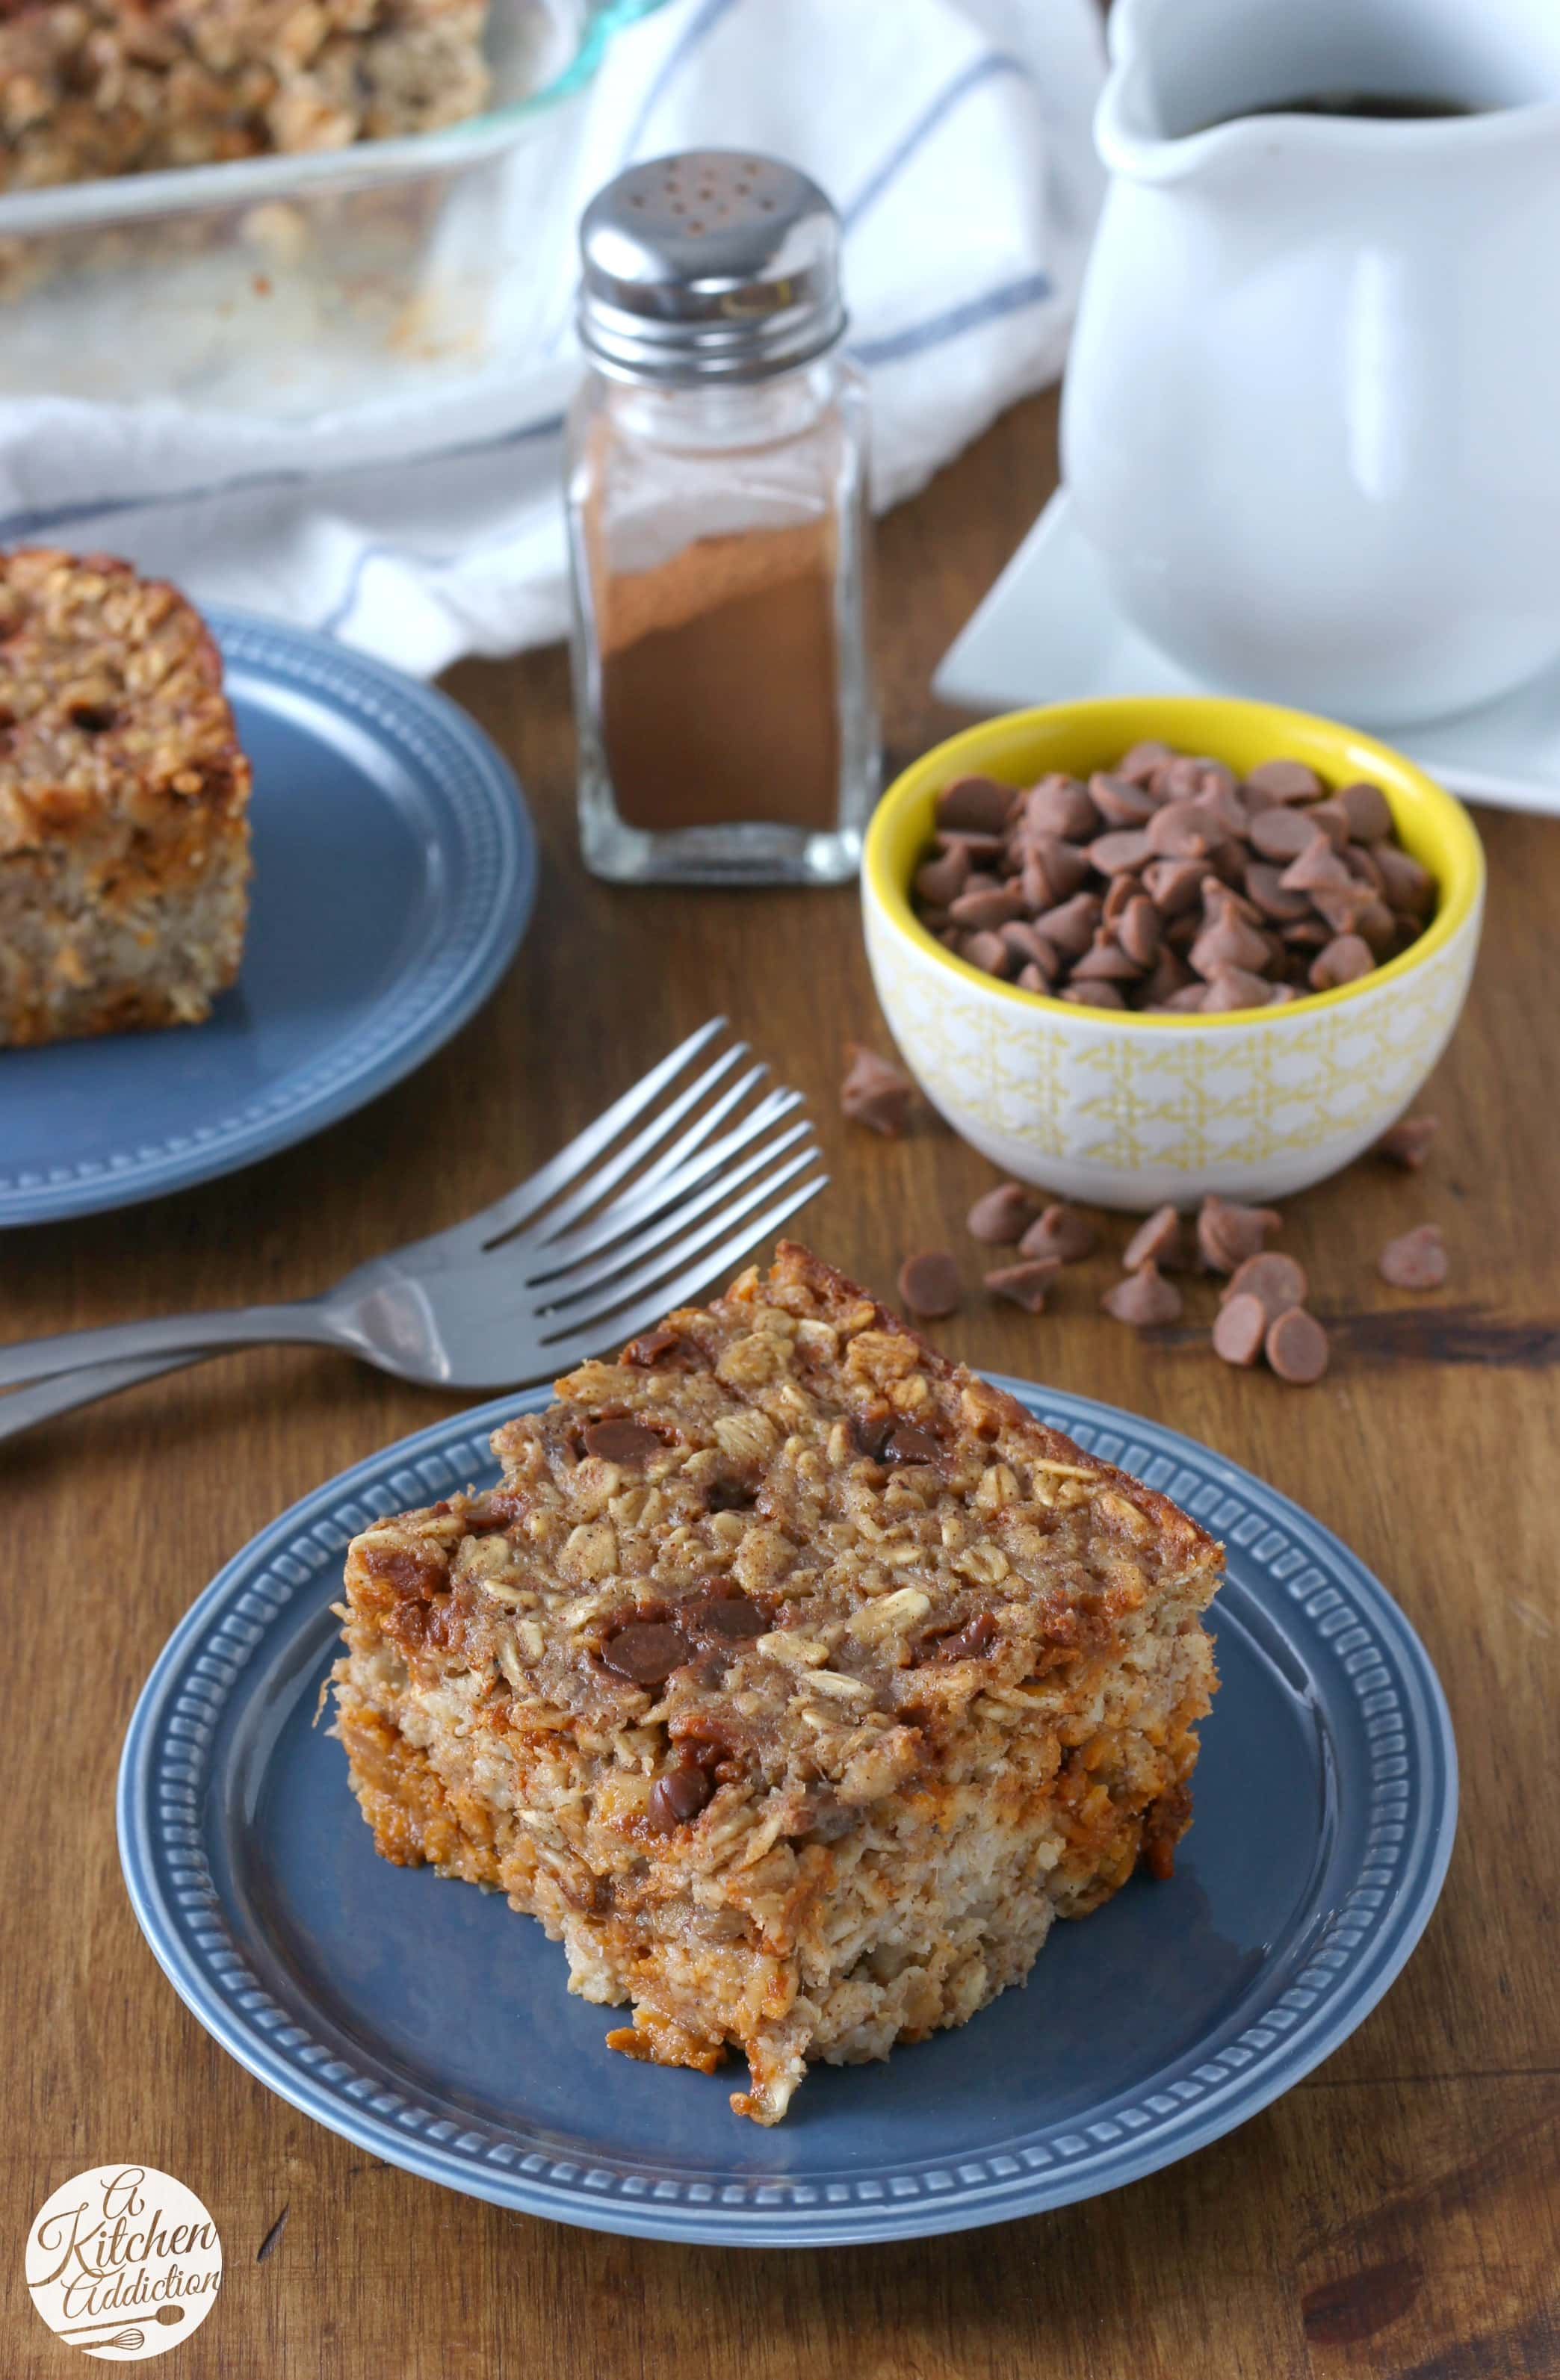 Easy Cinnamon Chip Banana Bread Baked Oatmeal Recipe from A Kitchen Addiction